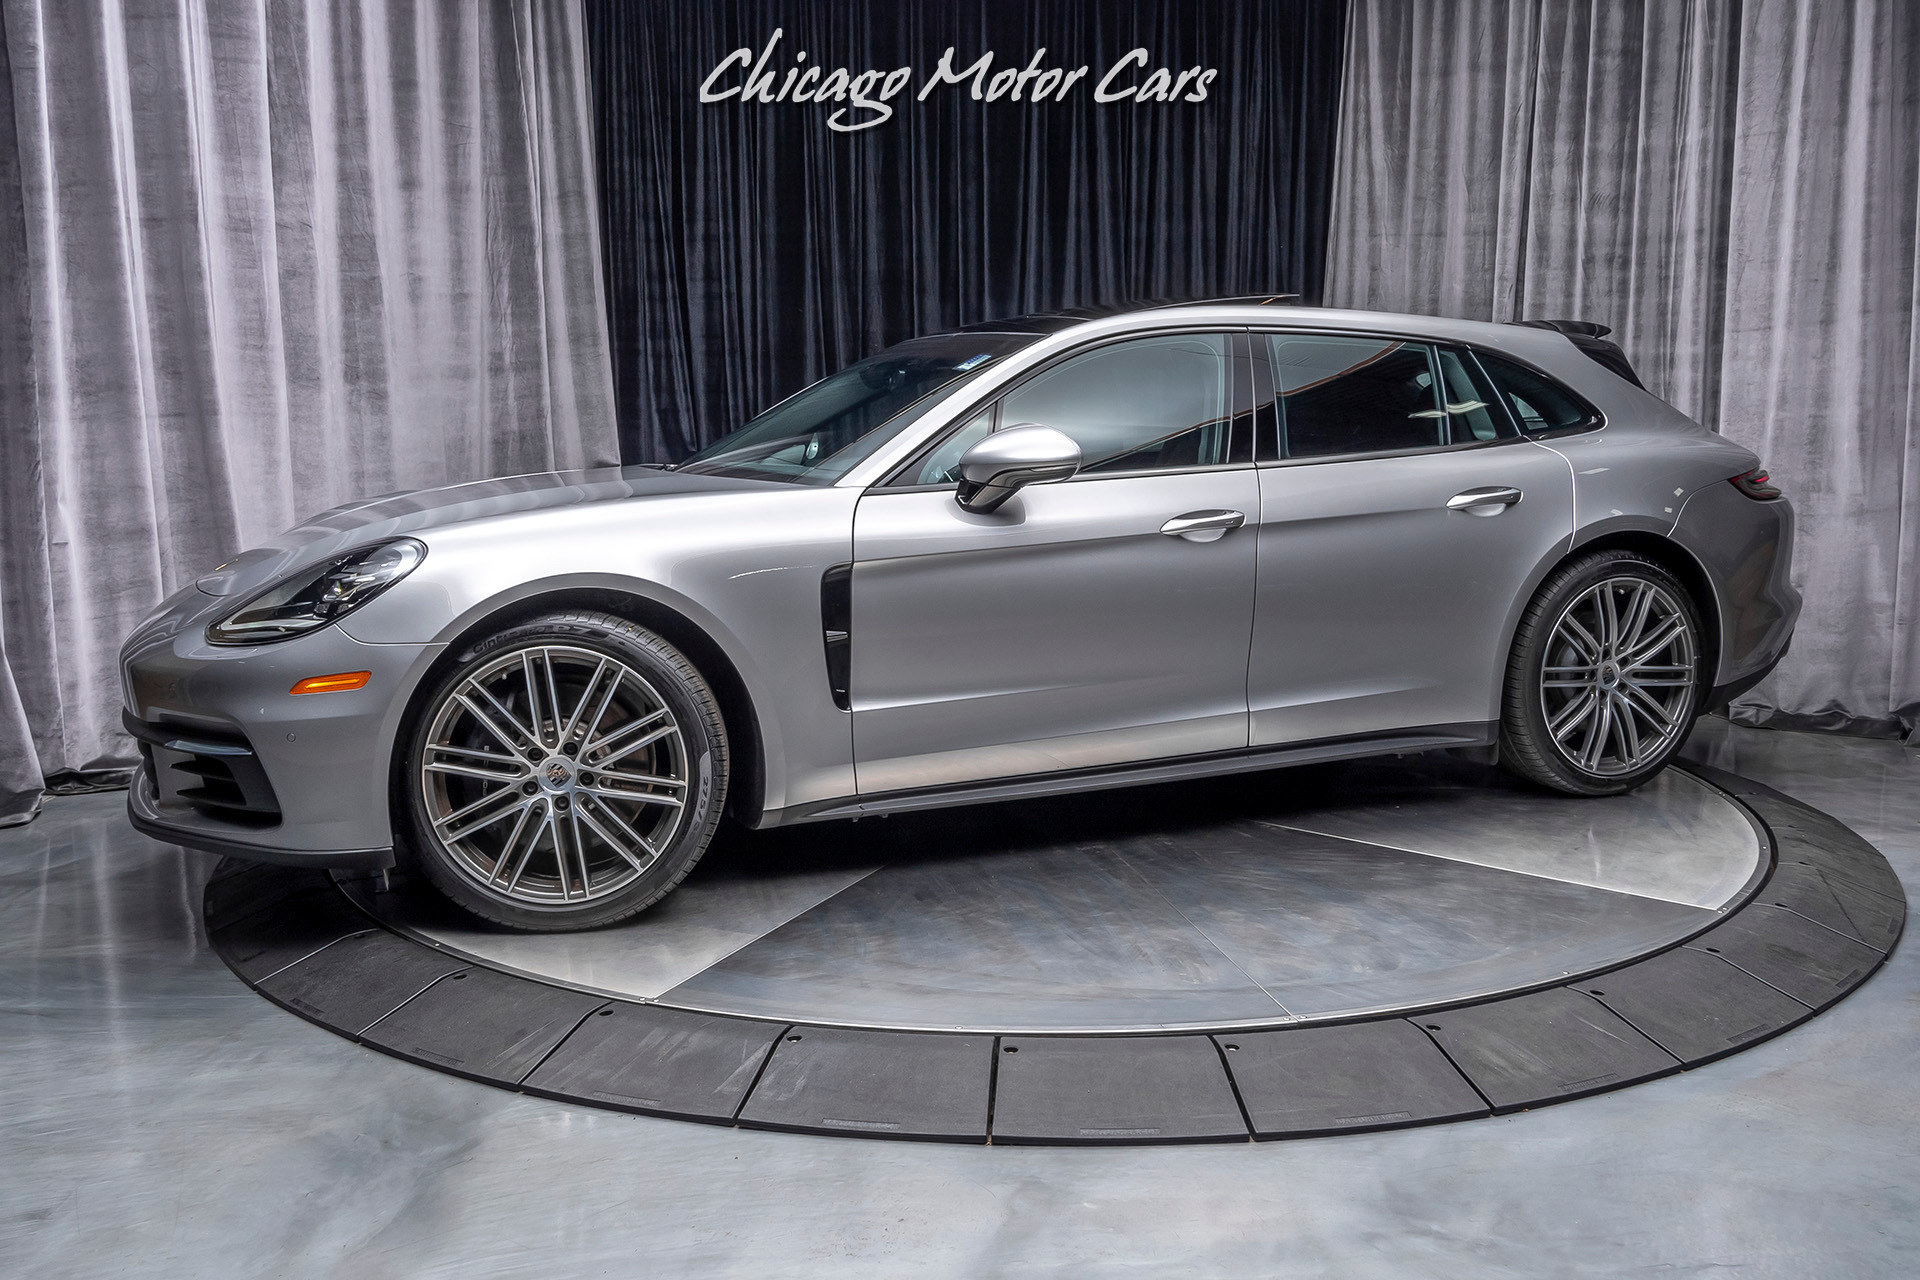 Used-2018-Porsche-Panamera-4-Sport-Turismo-ONLY-ONE-OWNER-600-MILES-MSRP-120k